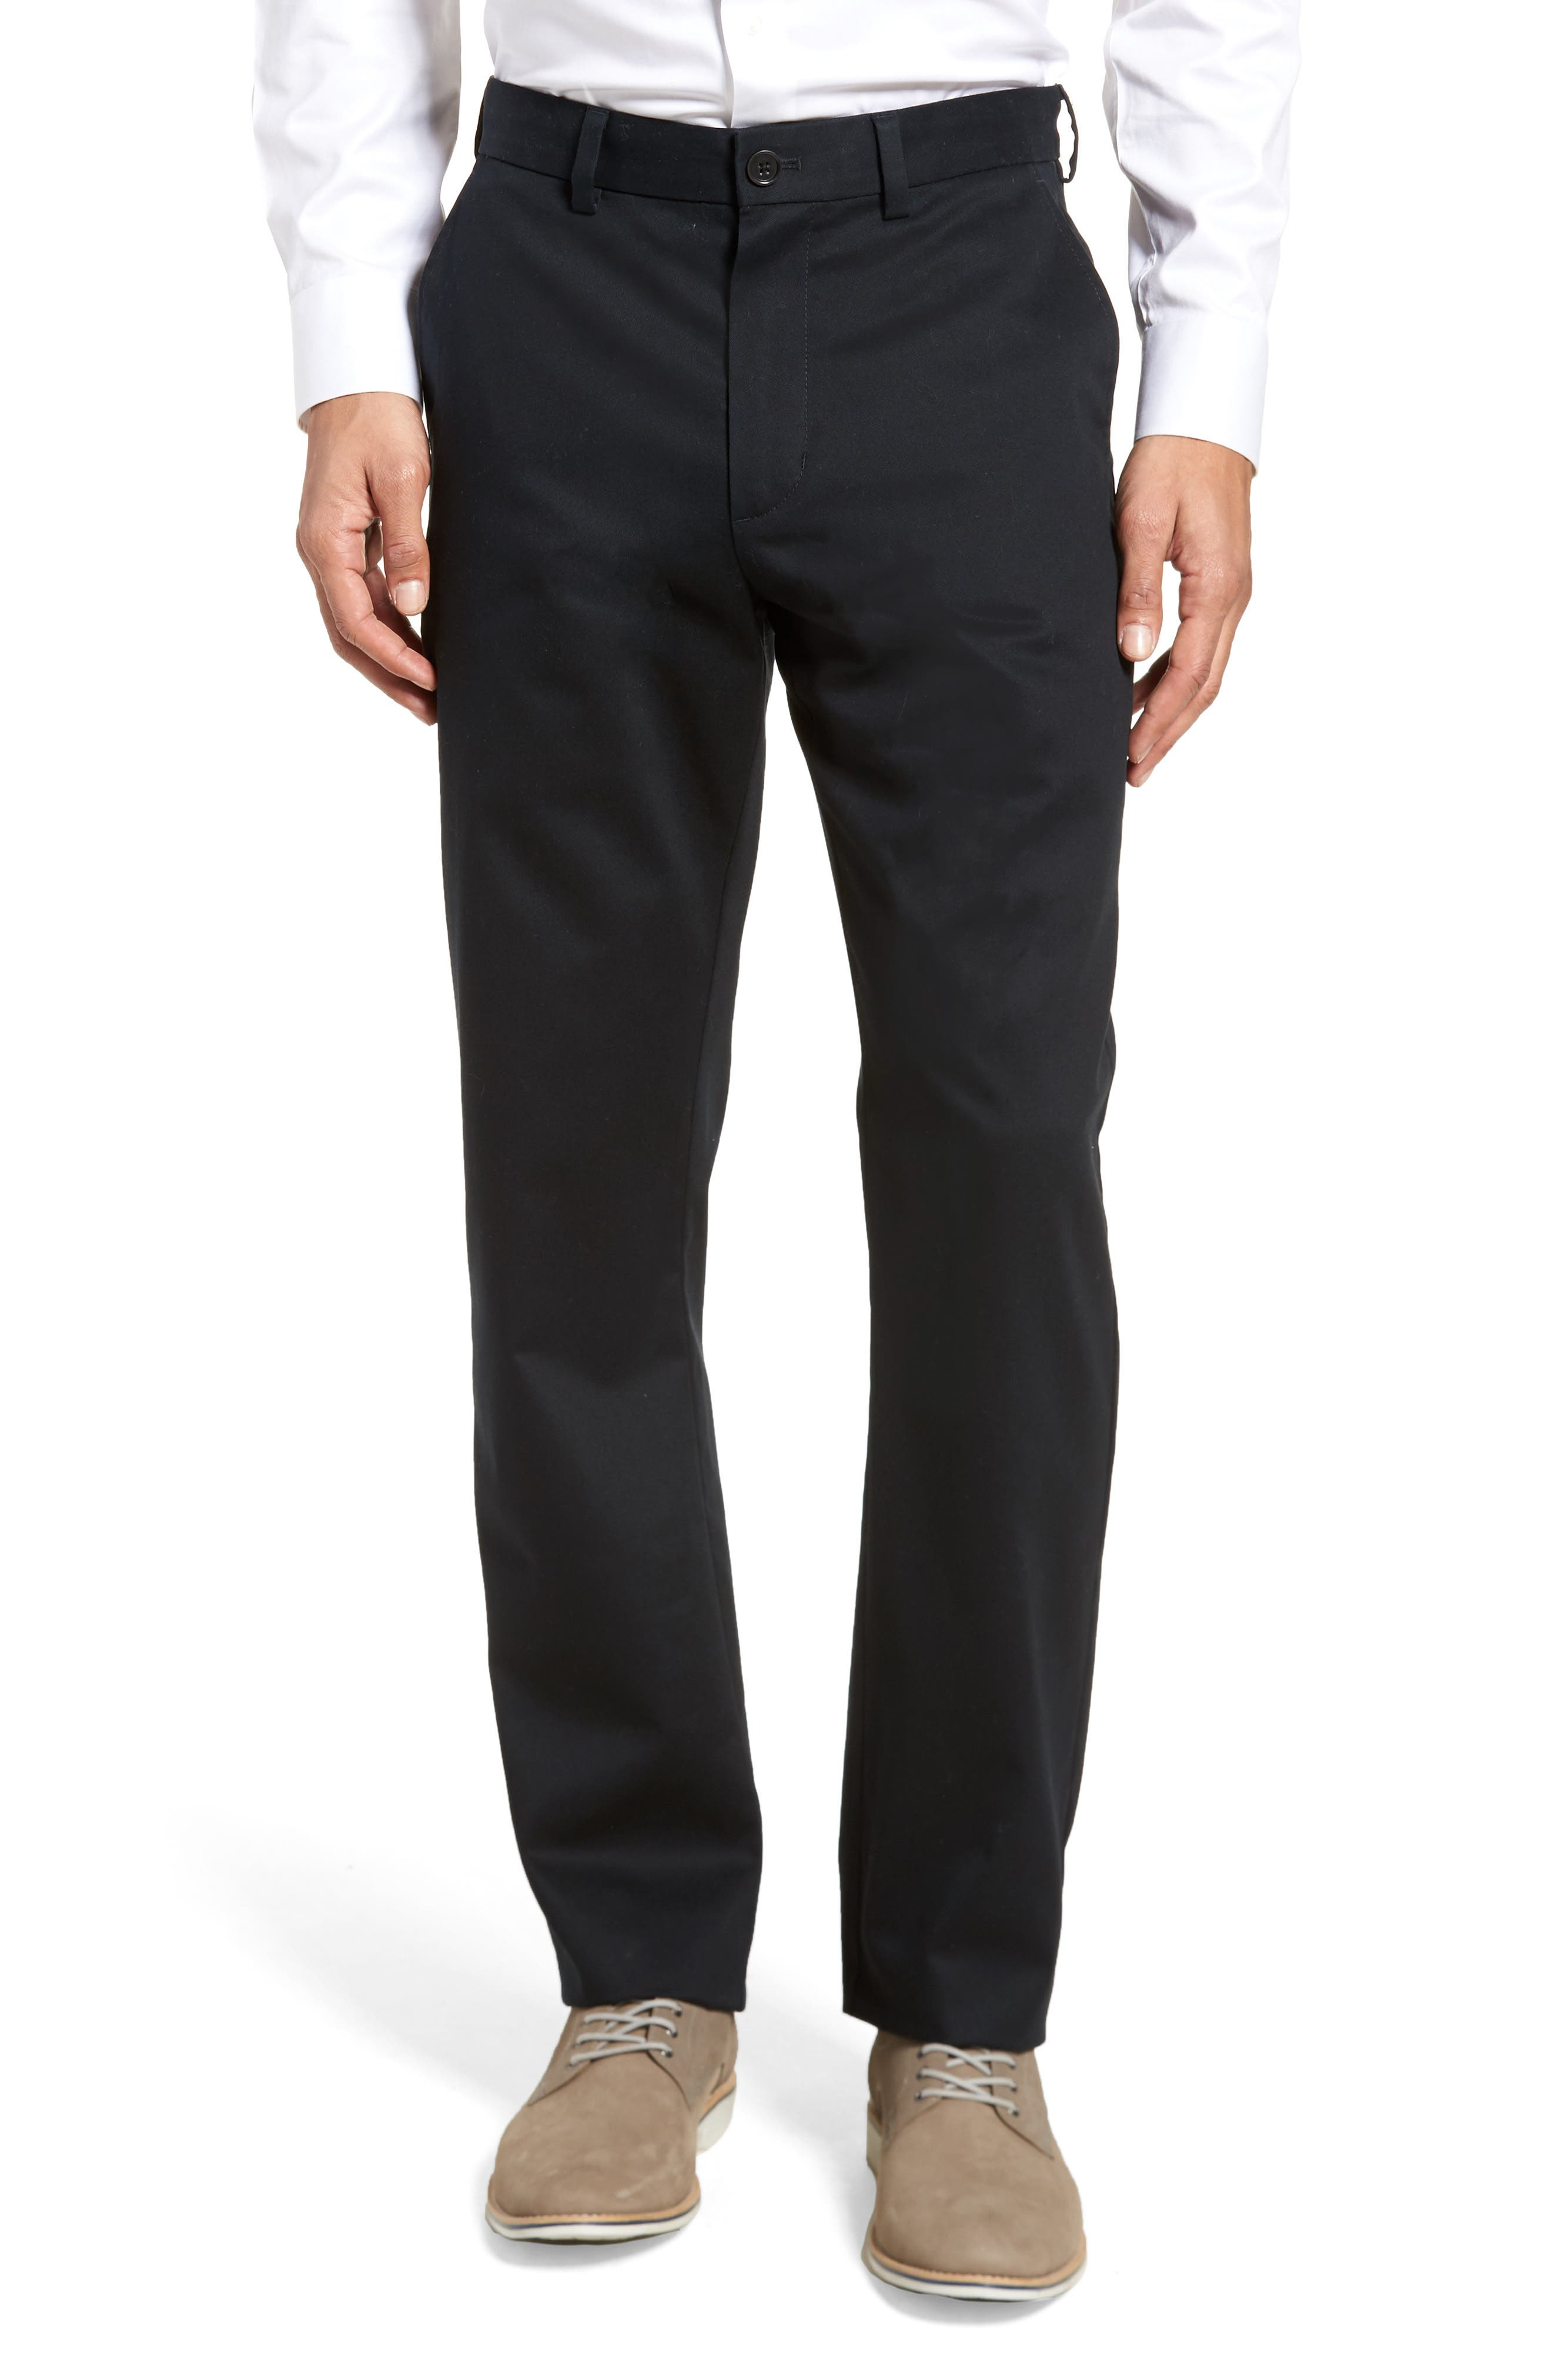 NORDSTROM MEN'S SHOP, Wrinkle Free Straight Leg Chinos, Main thumbnail 1, color, ANTHRACITE